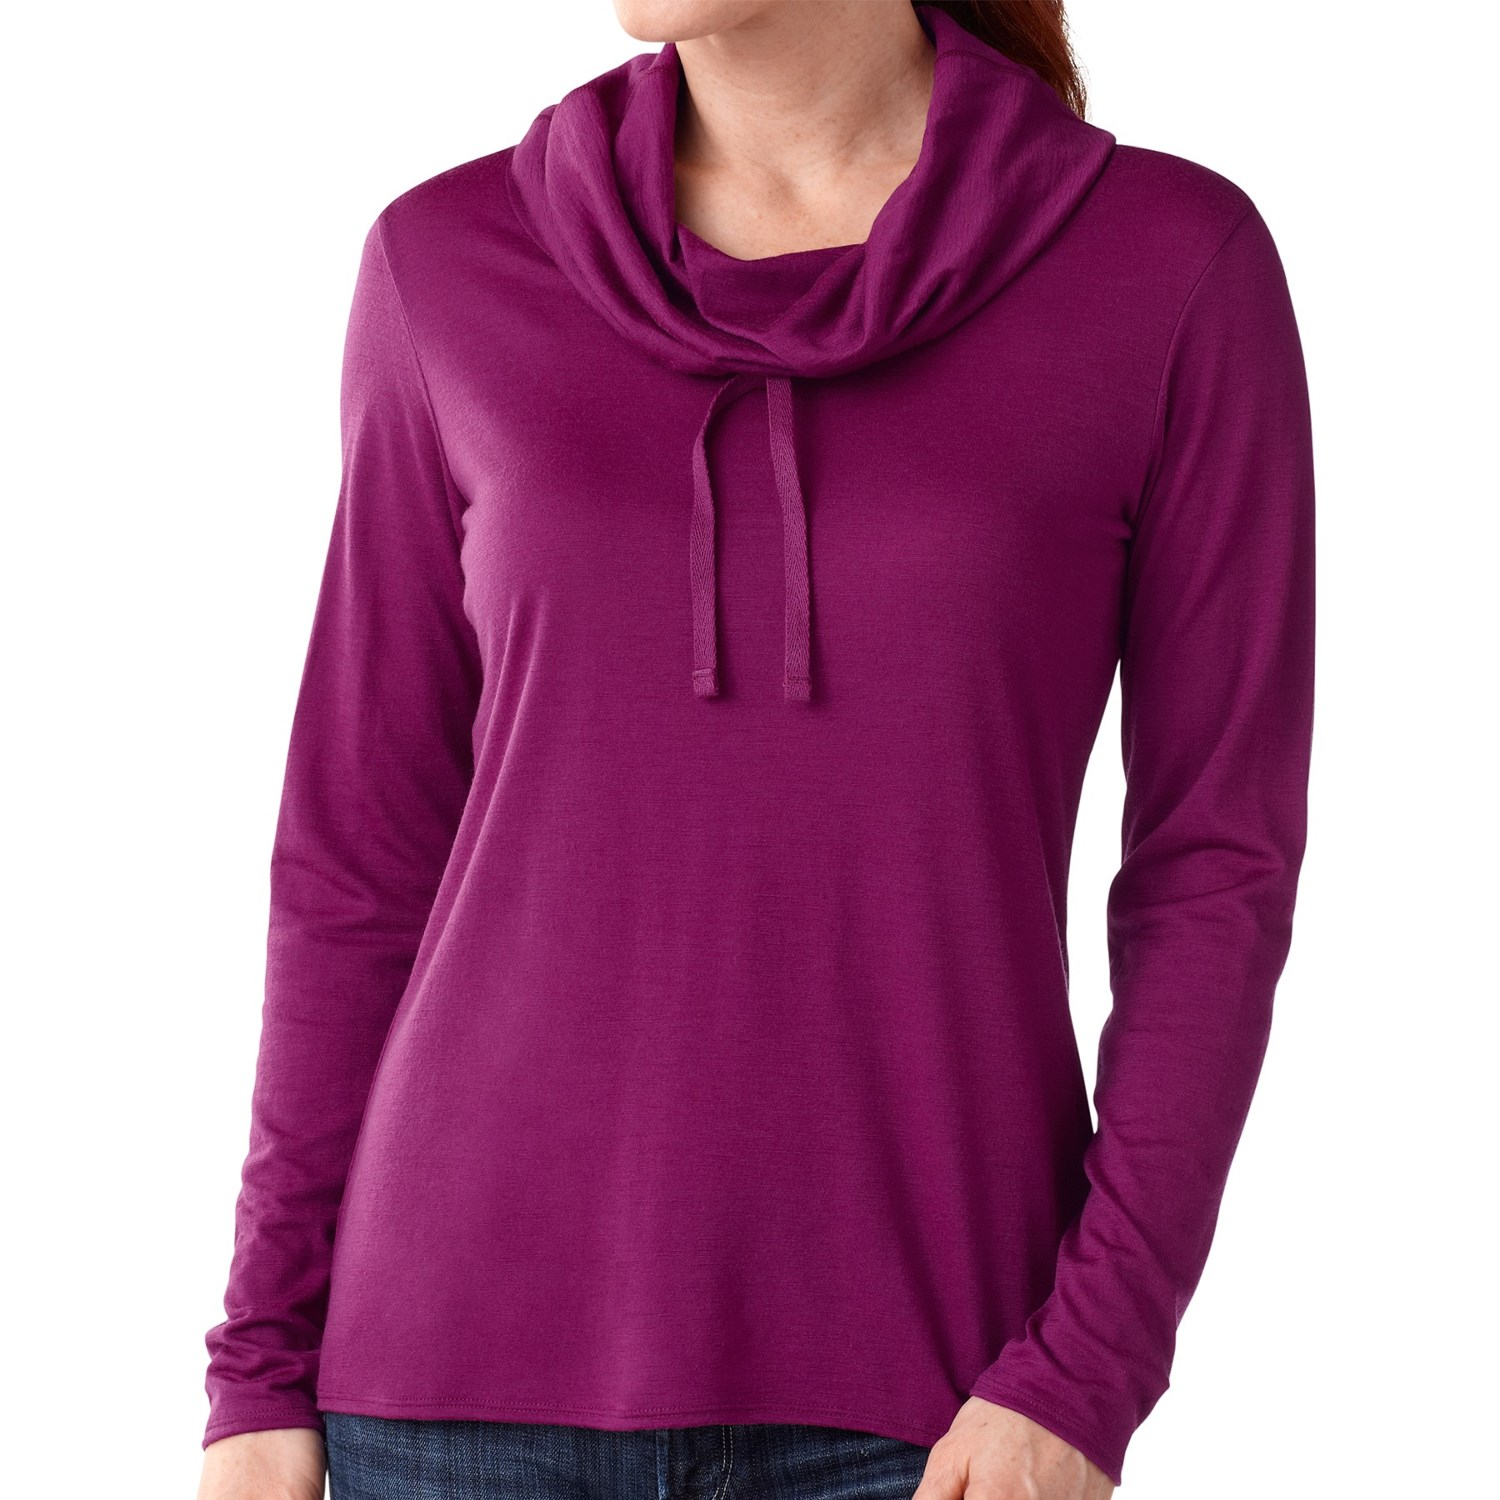 Smartwool cowl neck shirt merino wool long sleeve for for Merino wool shirt womens